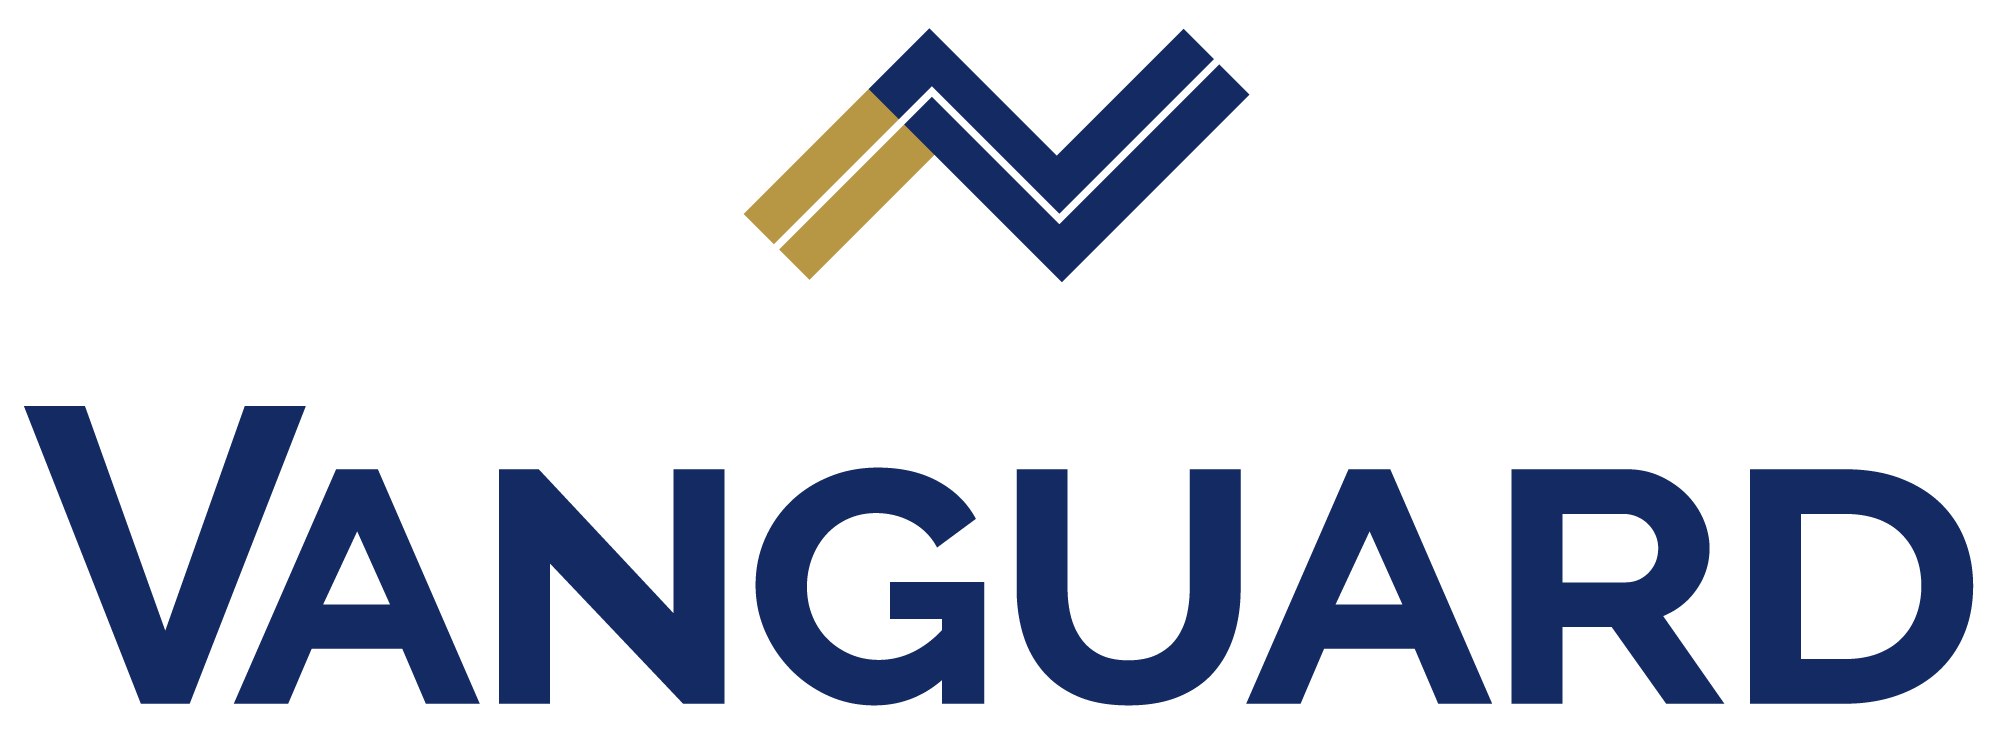 Vangaurd_Logo_Stacked_Color